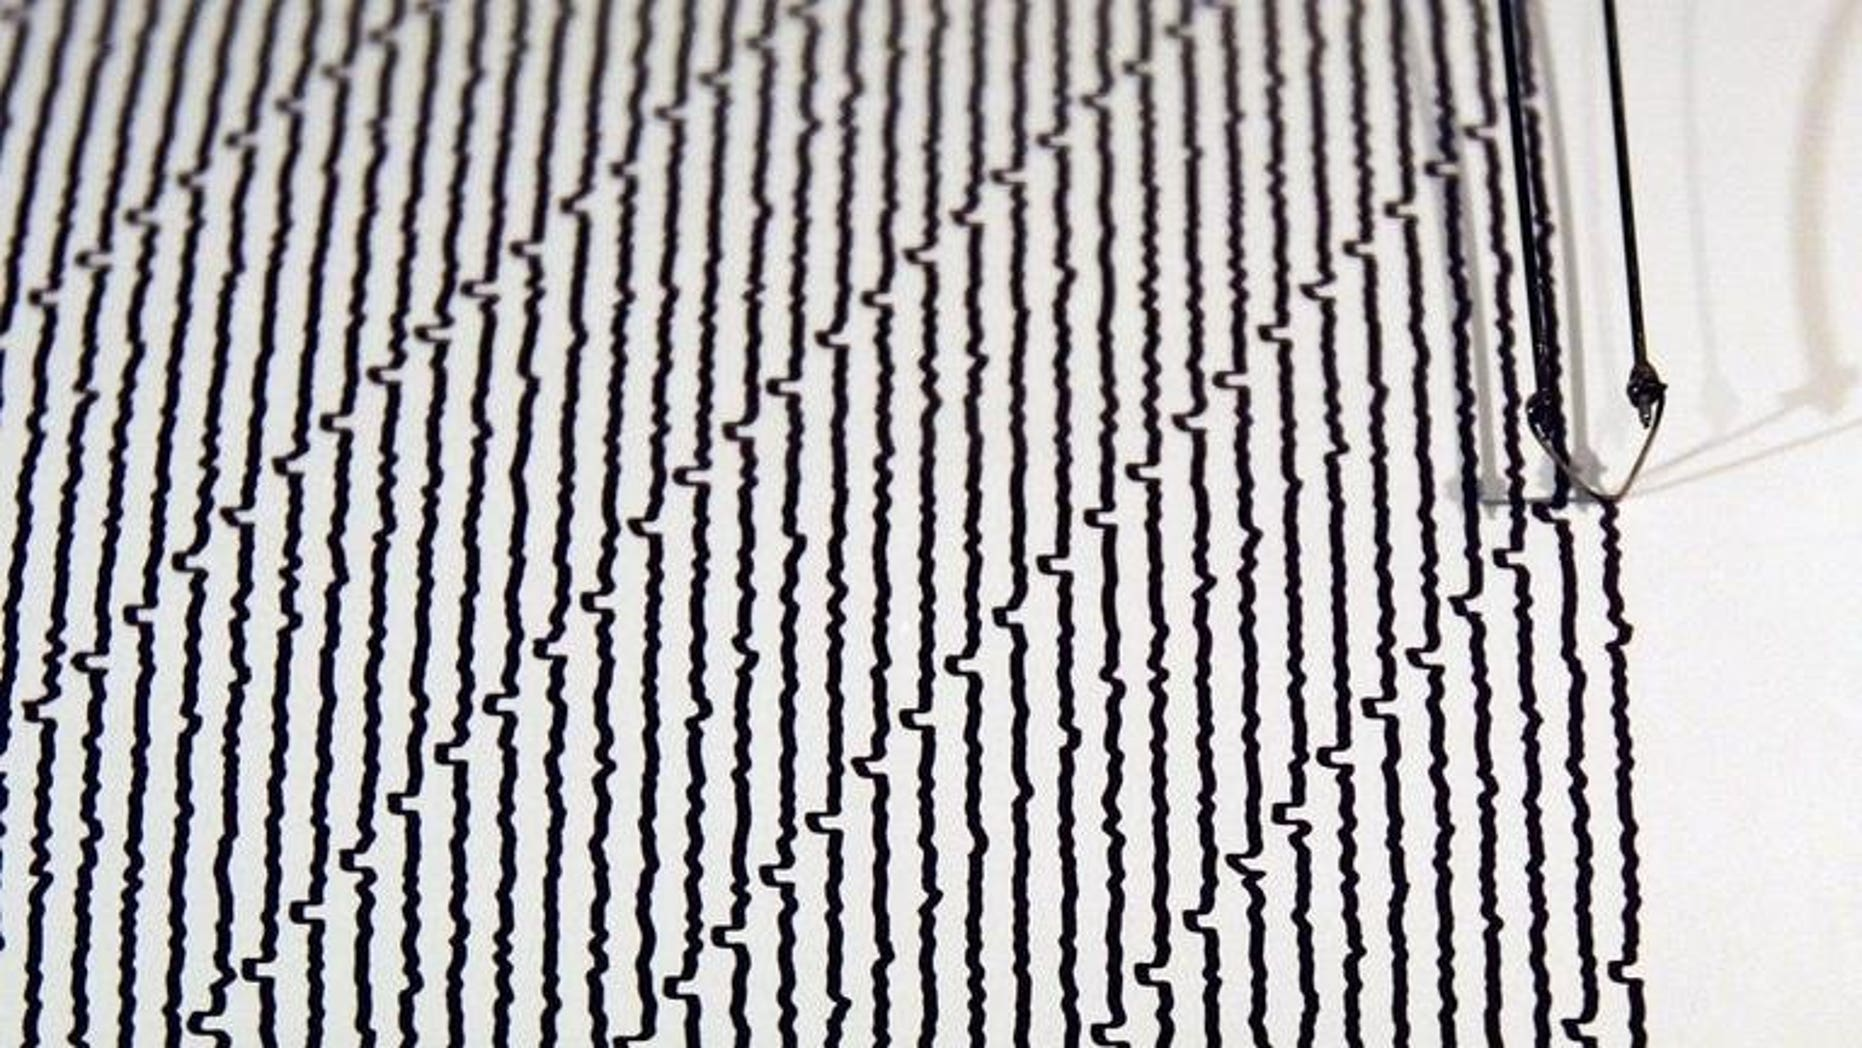 A 5.3-magnitude earthquake rocked Wellington on Friday, officials said, sending office workers scrambling for cover as tower blocks swayed but no damage was reported.